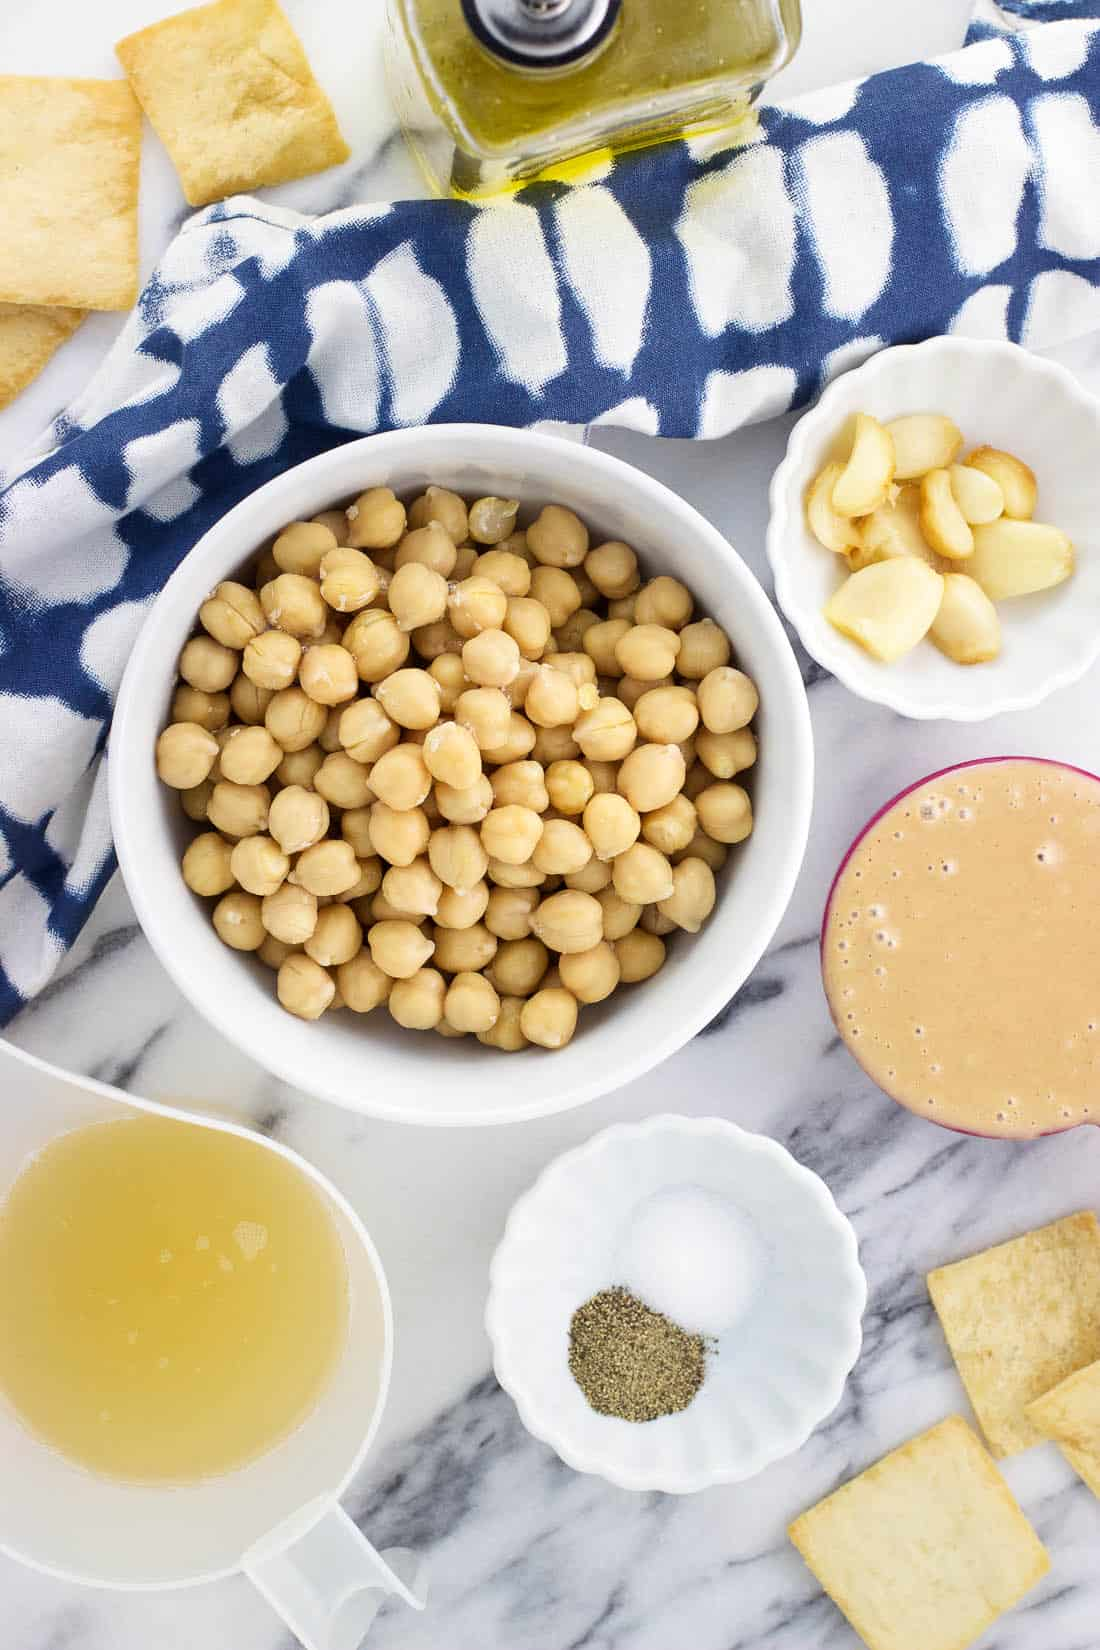 An overhead shot of chickpeas, tahini, roasted garlic cloves, olive oil, and spices